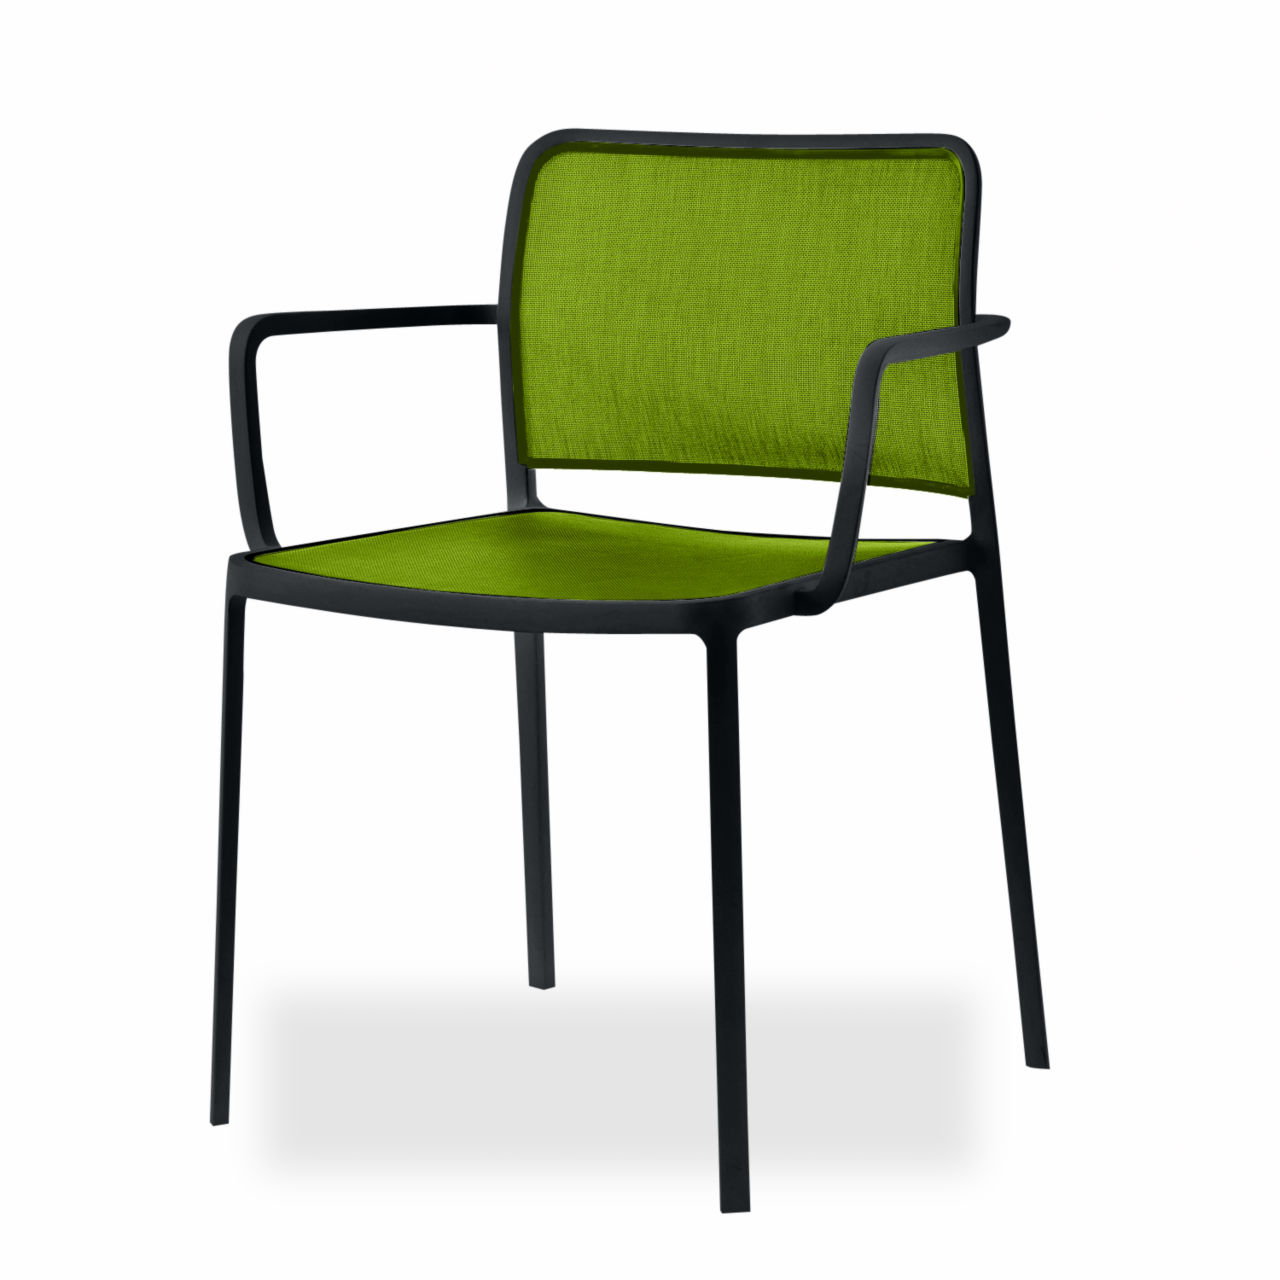 Audrey Soft Chair in Black by Kartell